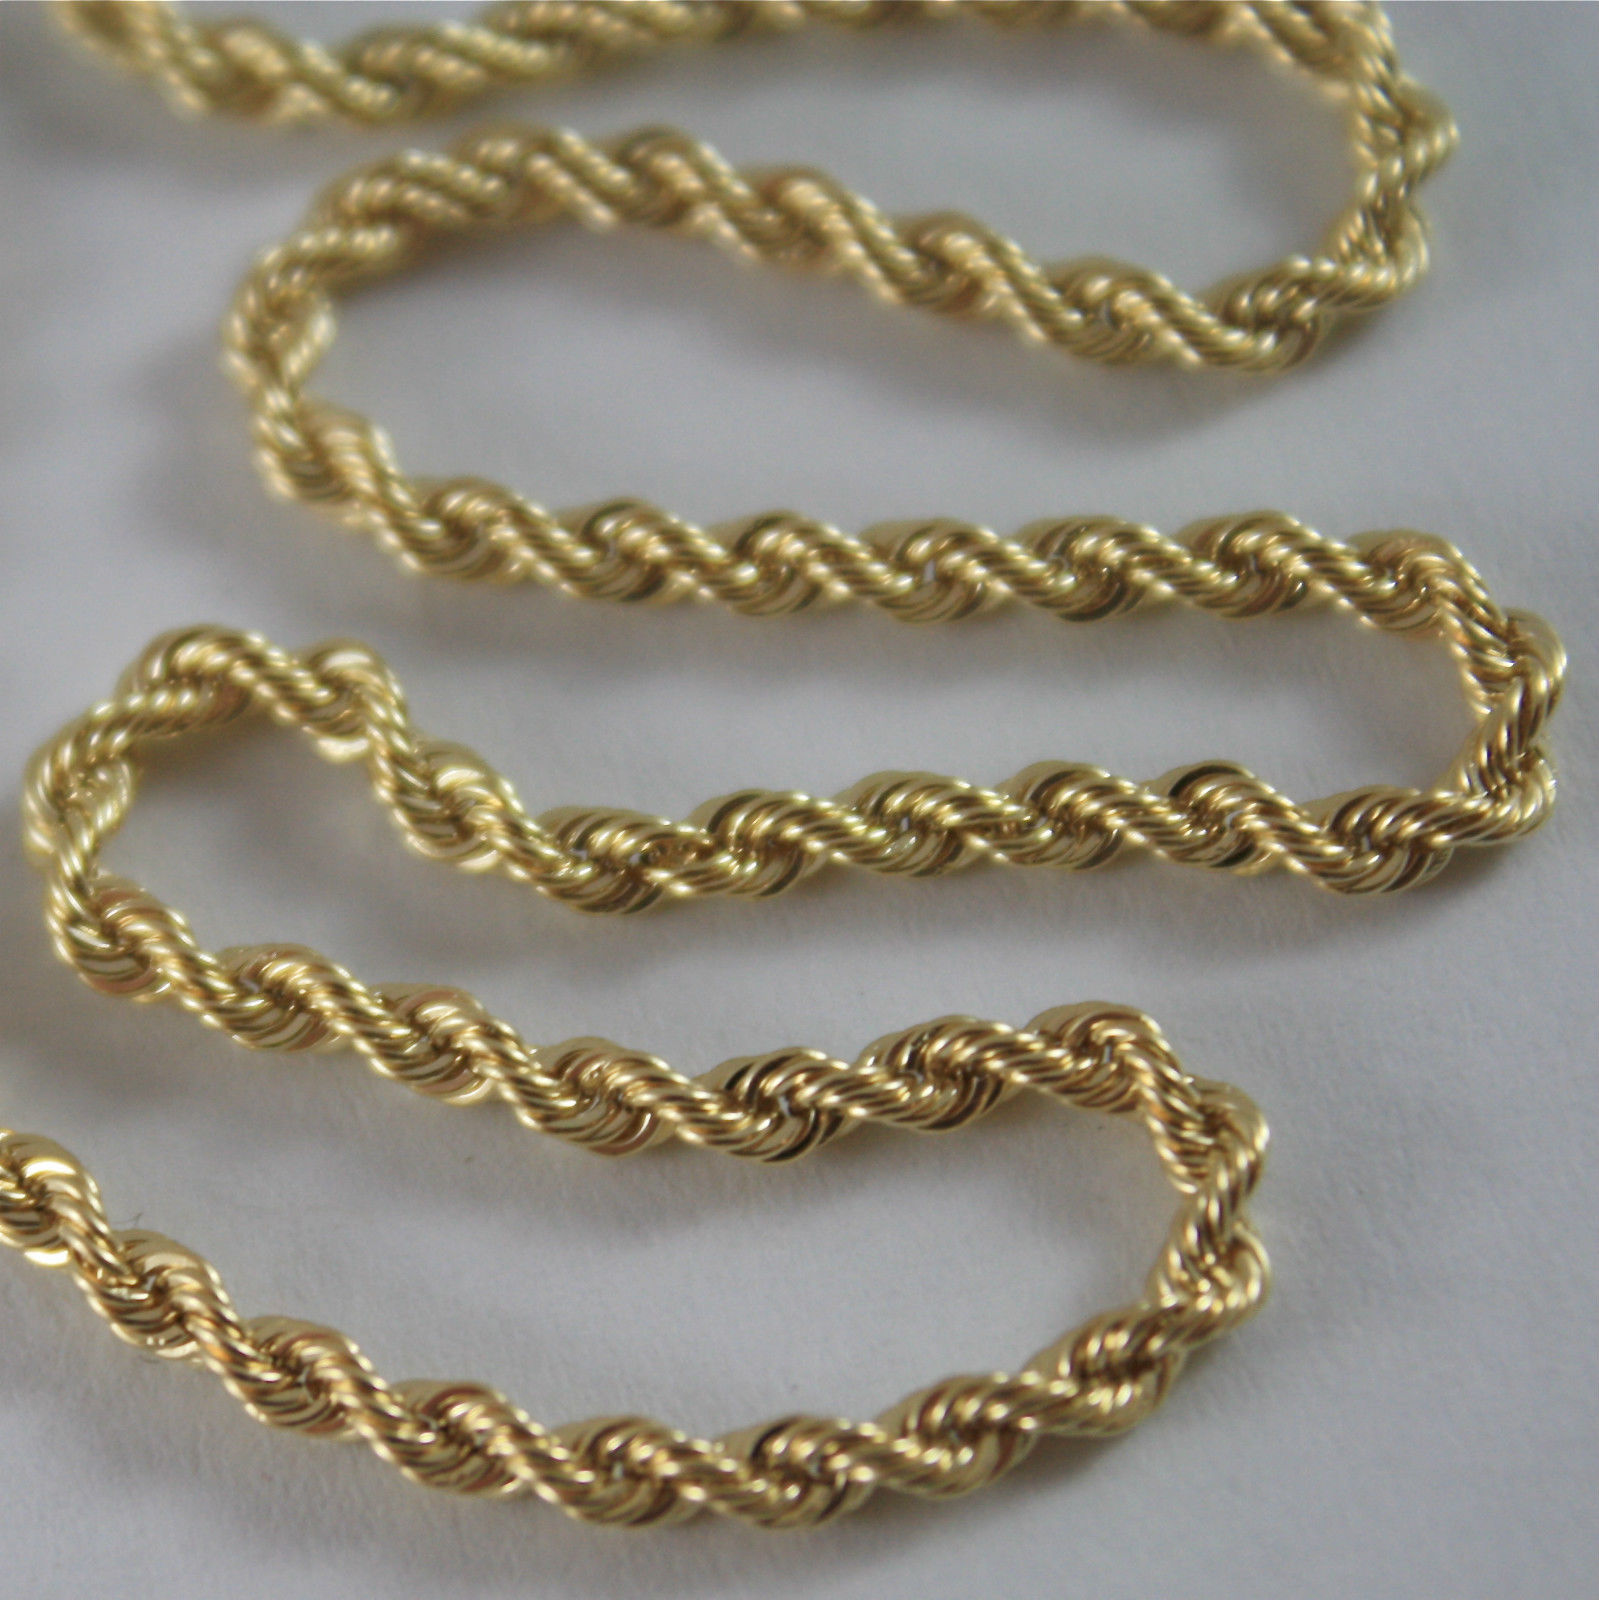 Primary image for SOLID 18K YELLOW GOLD CHAIN NECKLACE, BRAID ROPE MESH 23.62 IN, MADE IN ITALY